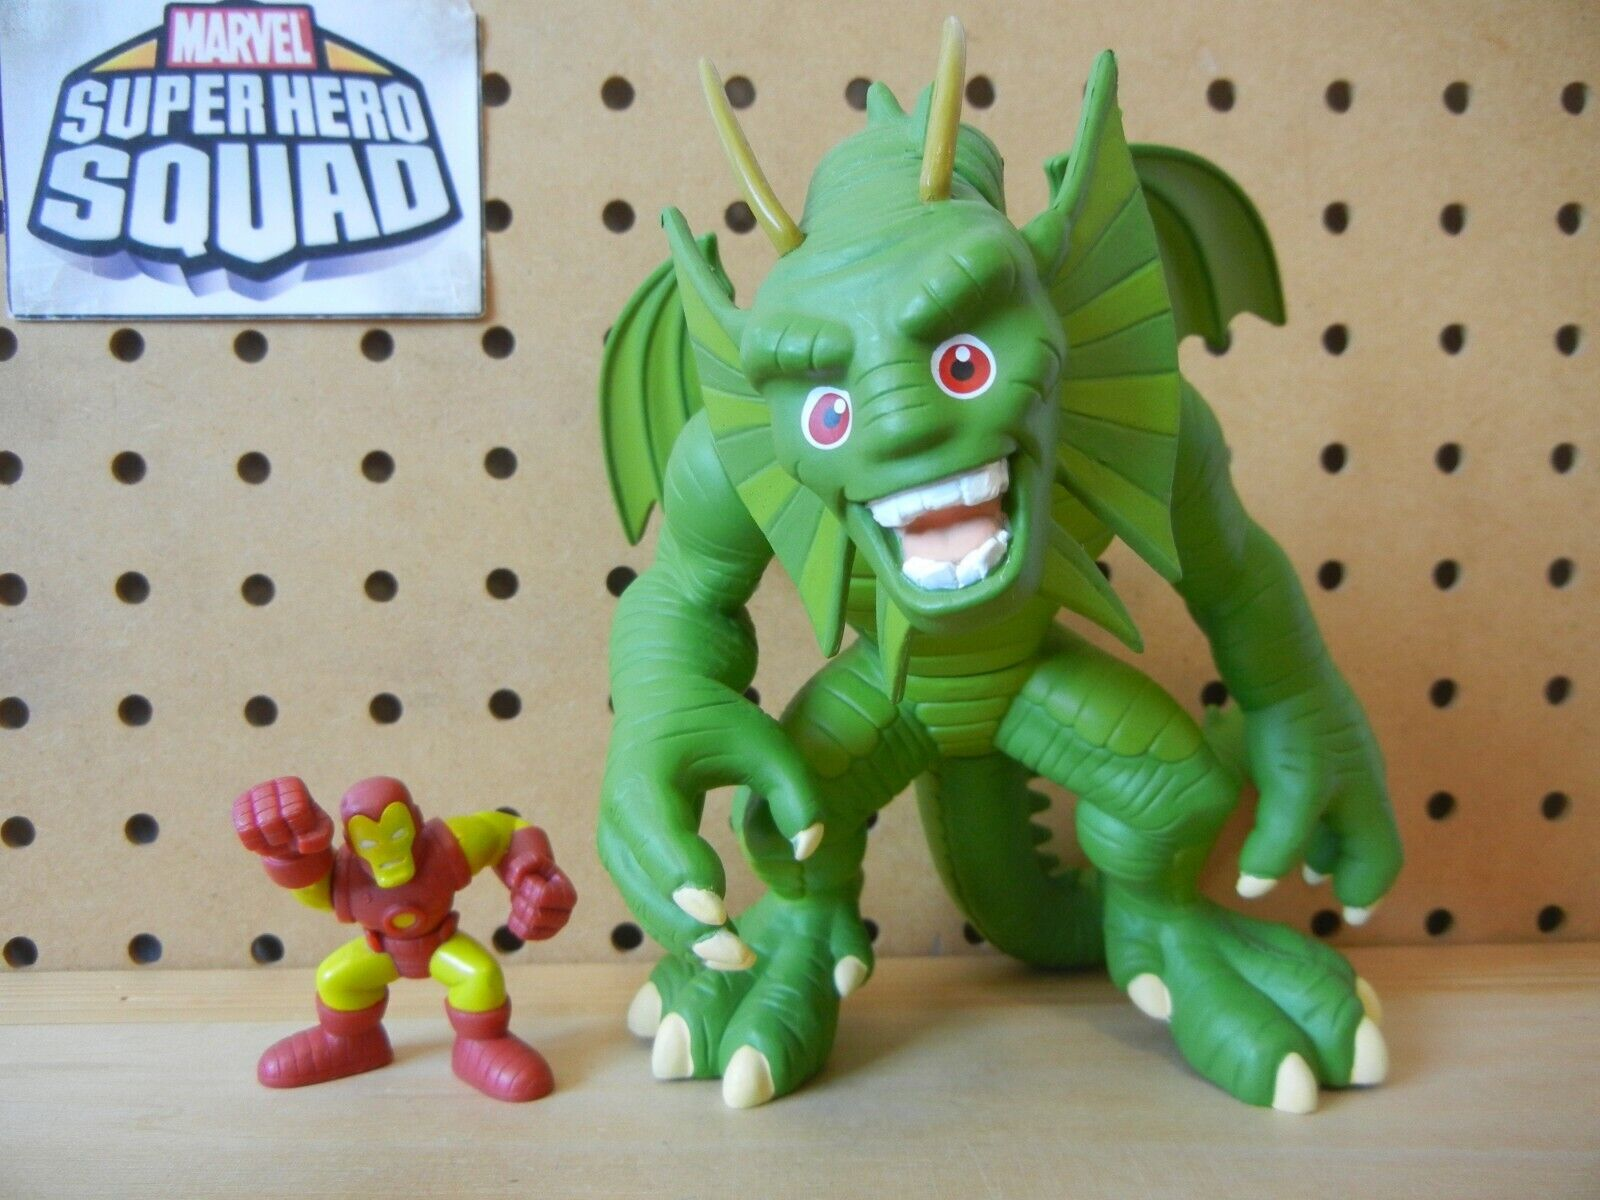 Marvel Super Hero Squad COMPLETE Mega Figure W3  FIN FANG FOOM & IRON MAN Dragon